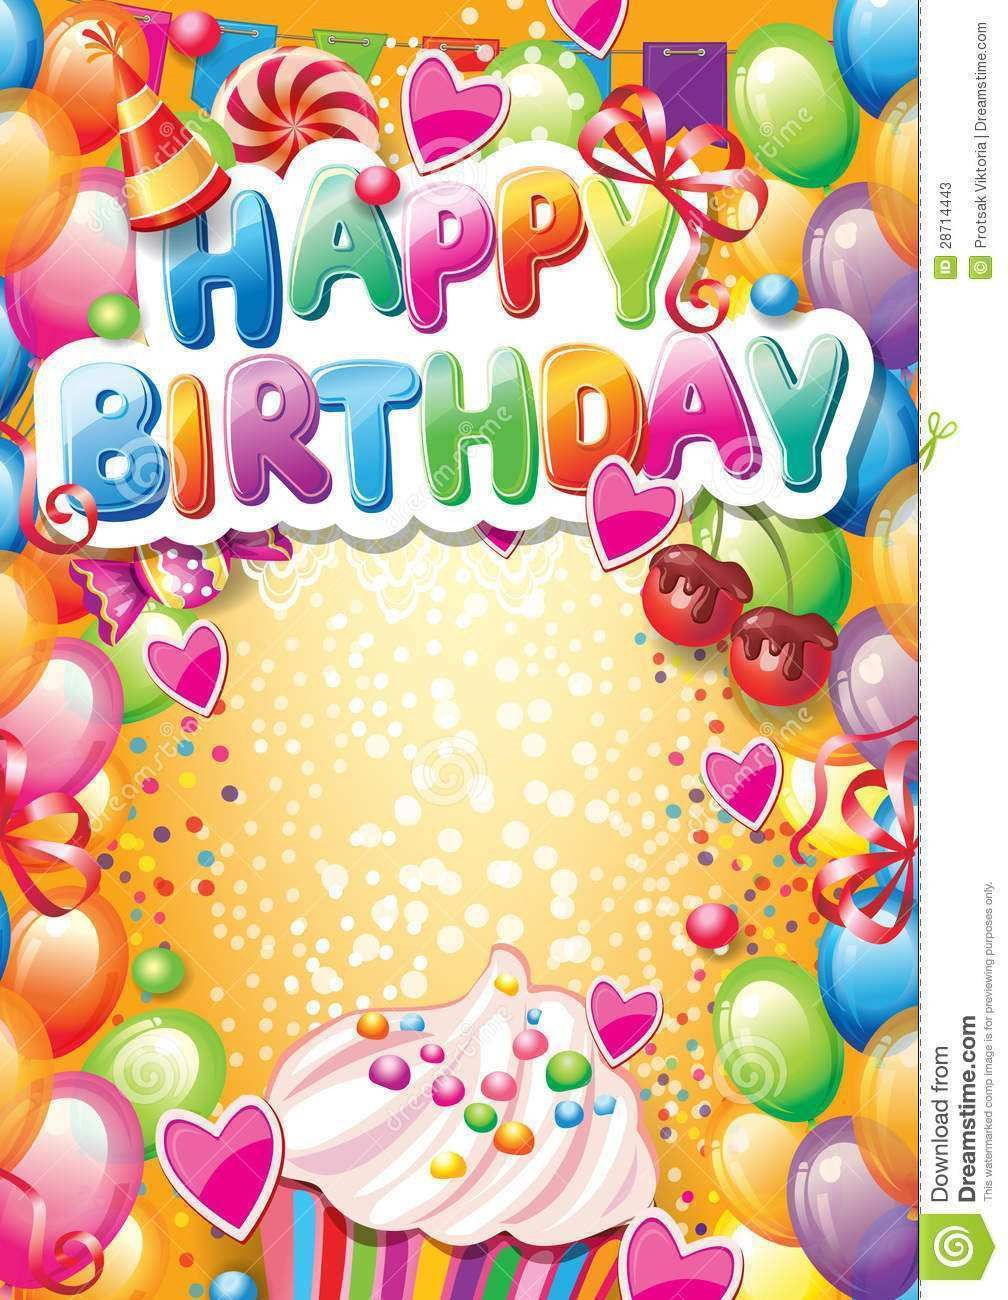 002 Frightening Birthday Card Template Free Image  Invitation Photoshop Download WordFull